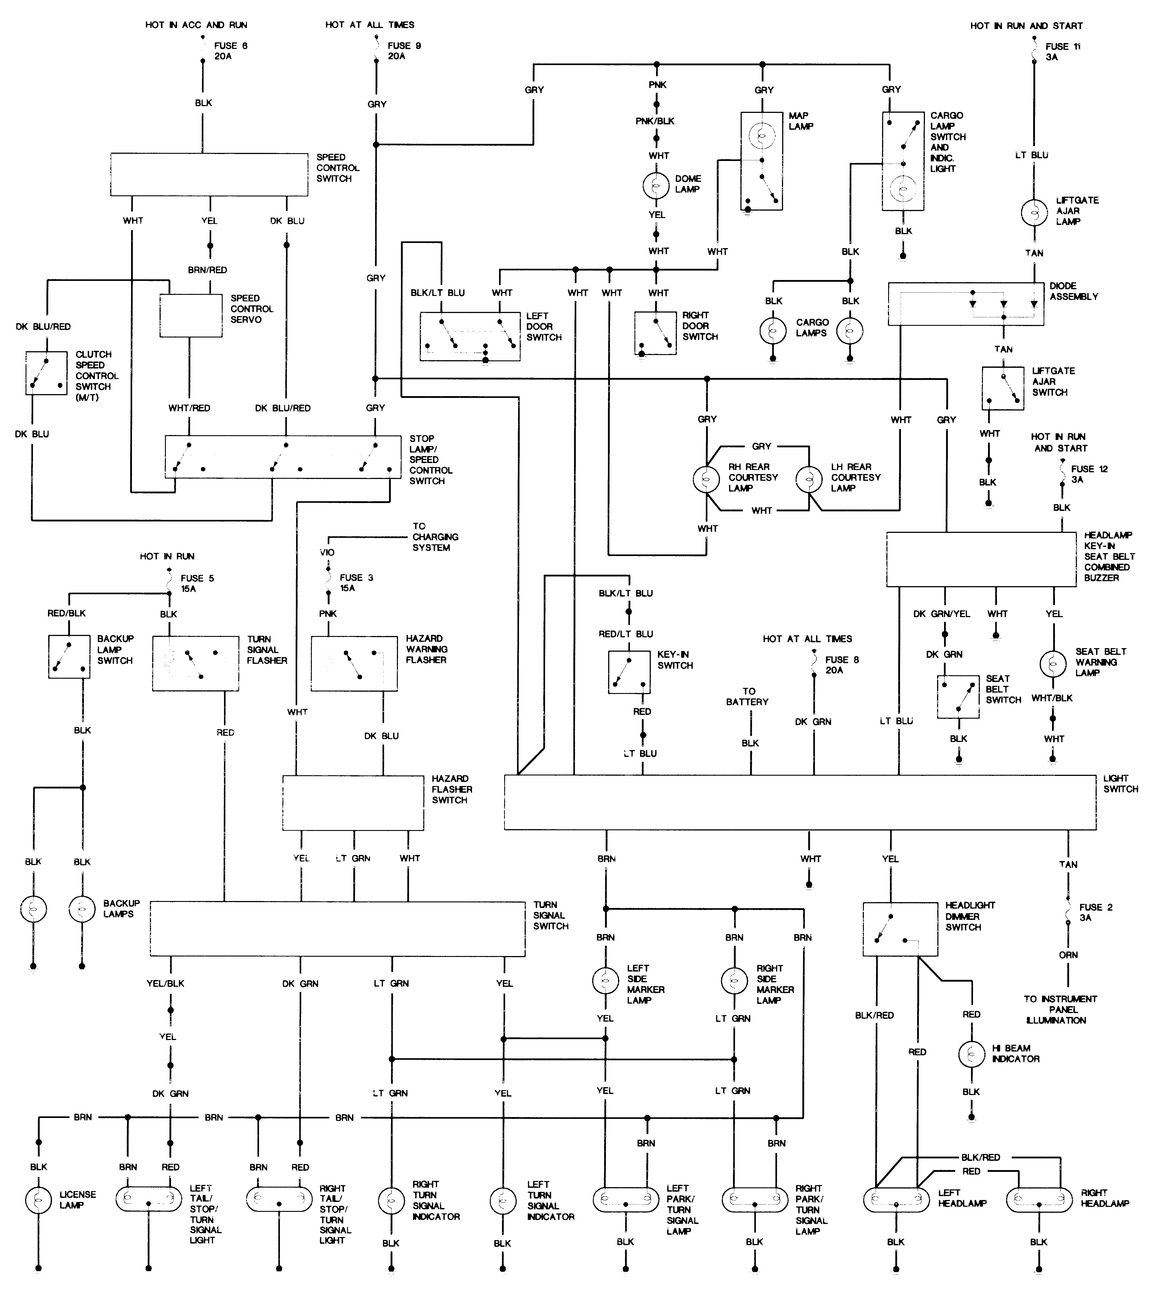 [DIAGRAM_5FD]  Brake Lights Not Working: My Brake Lights on My Truck Have Stopped... | 1984 Dodge Pickup Wiring Diagram |  | 2CarPros